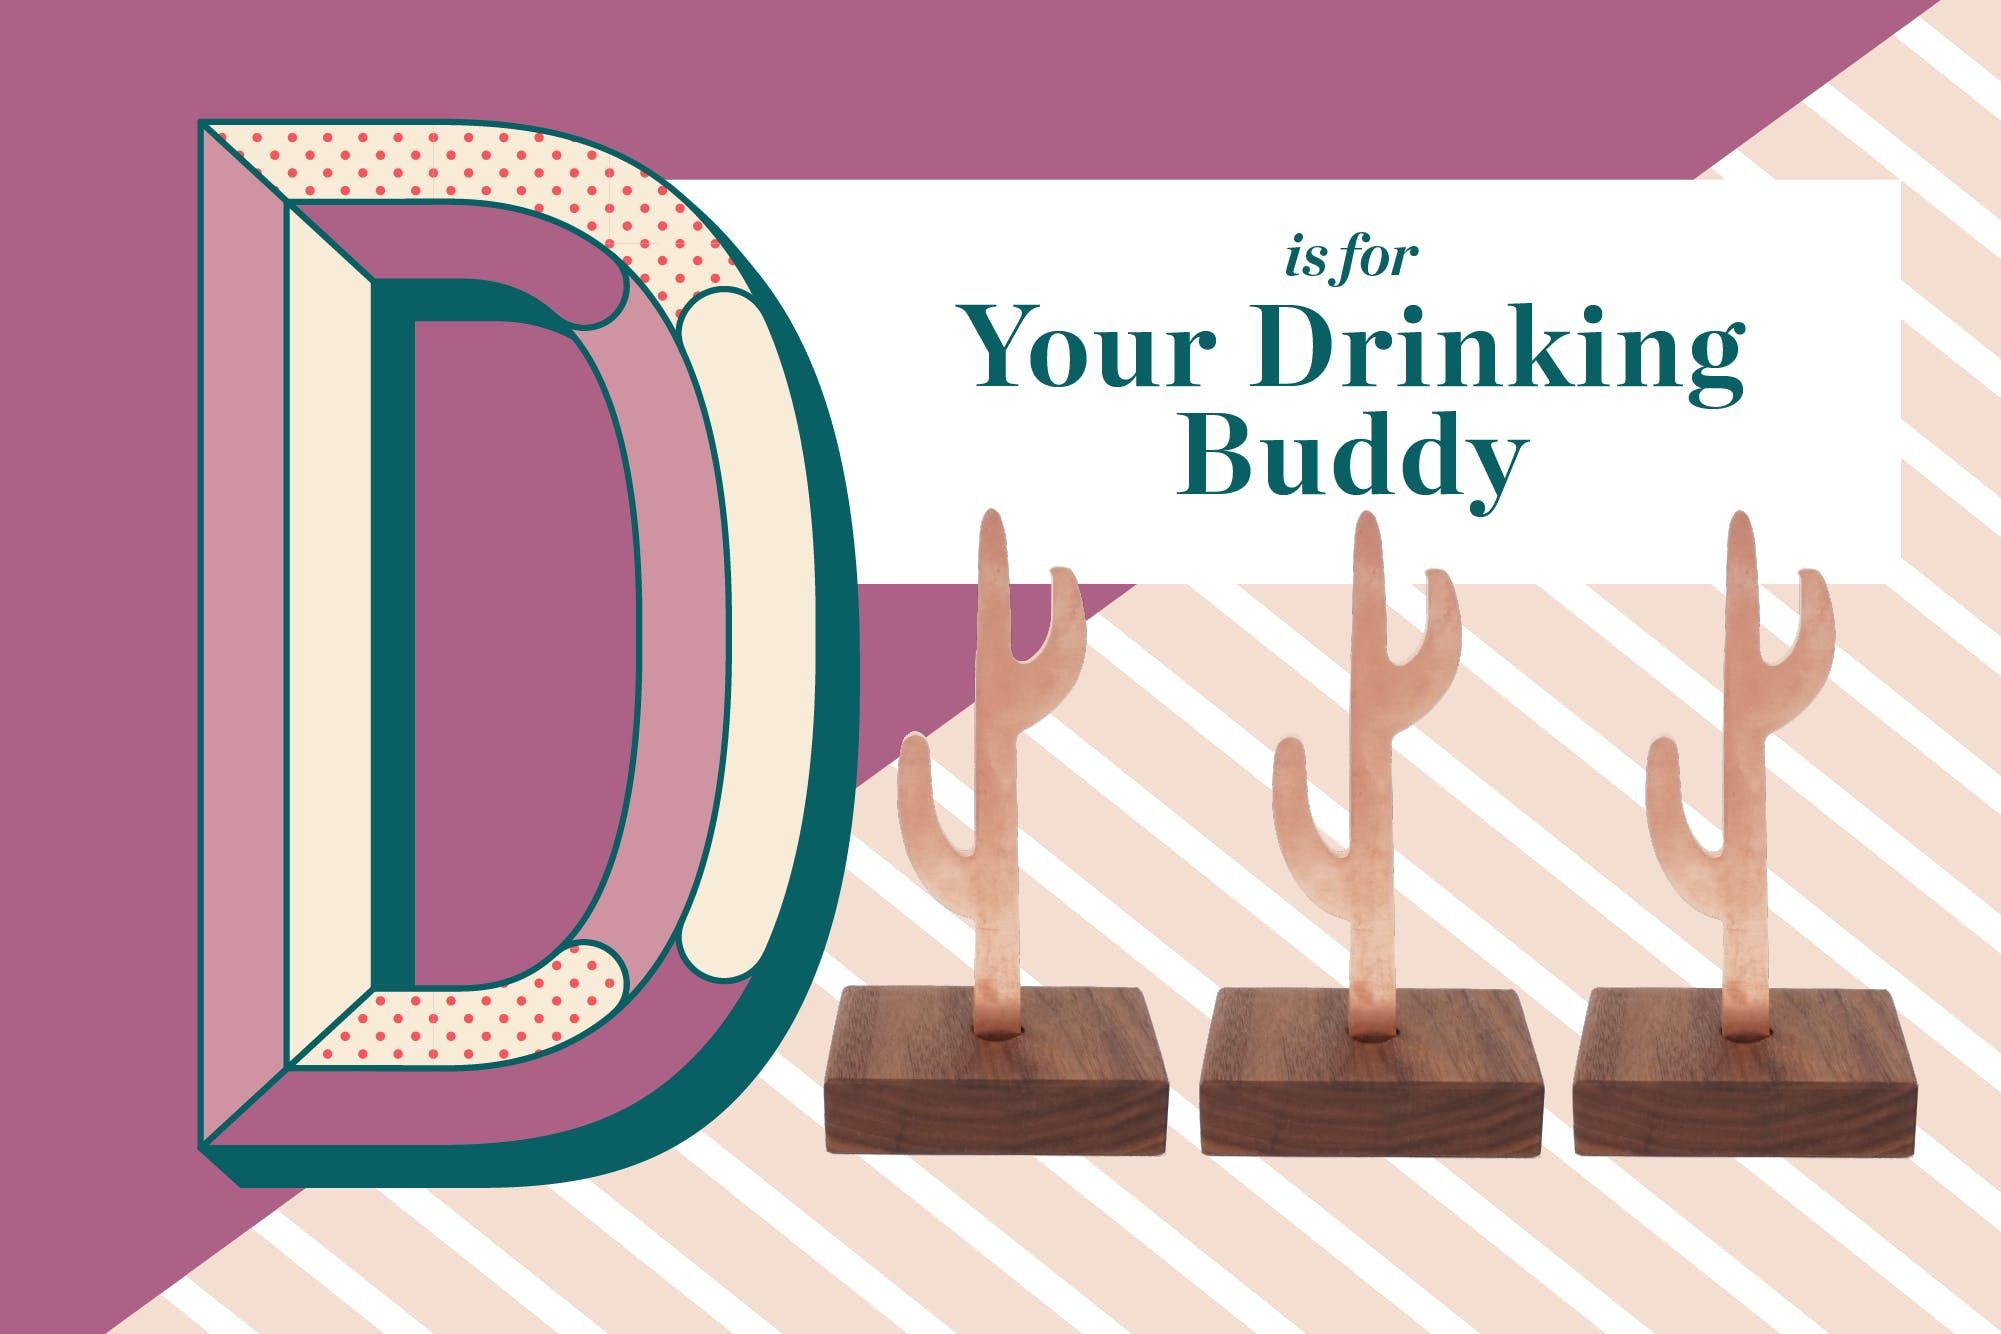 D Is for Your Drinking Buddy | Drinking buddies, Alcohol ...